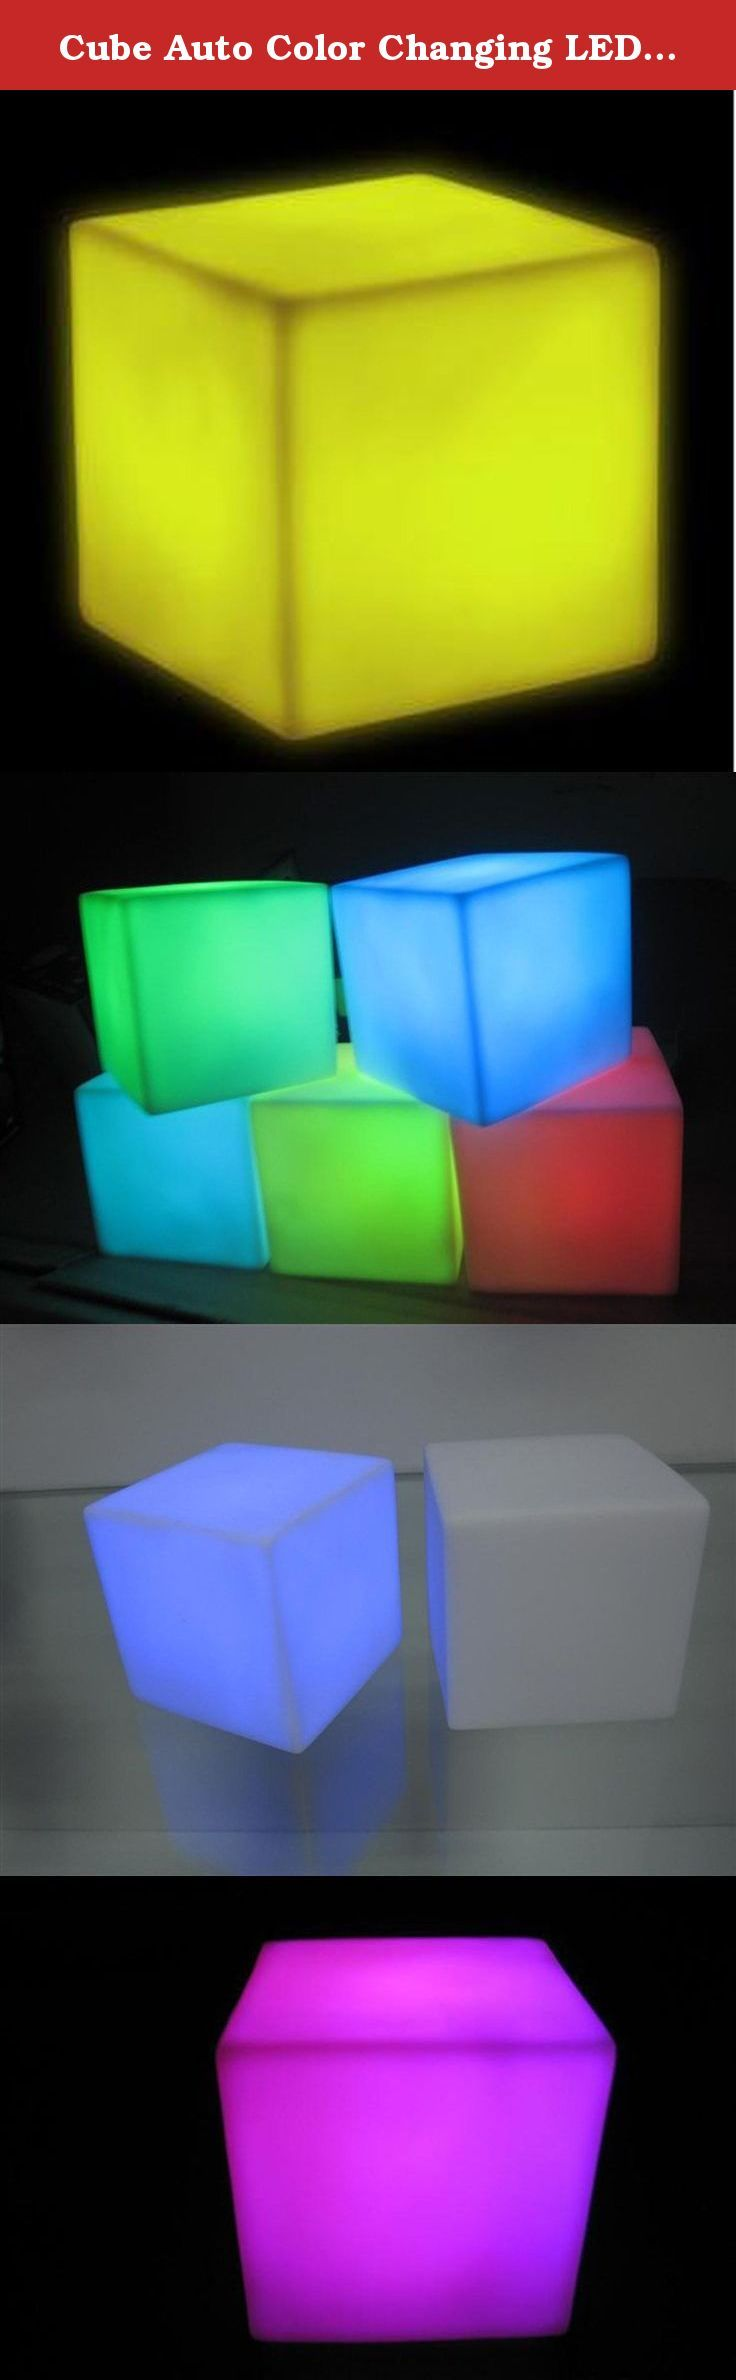 Cube Auto Color Changing LED Lamp Baby Kid Children Mood Lamp Night. Our Mood Cubes are a great stocking stuffer for you and yours. They bring a mellow glow to any room.